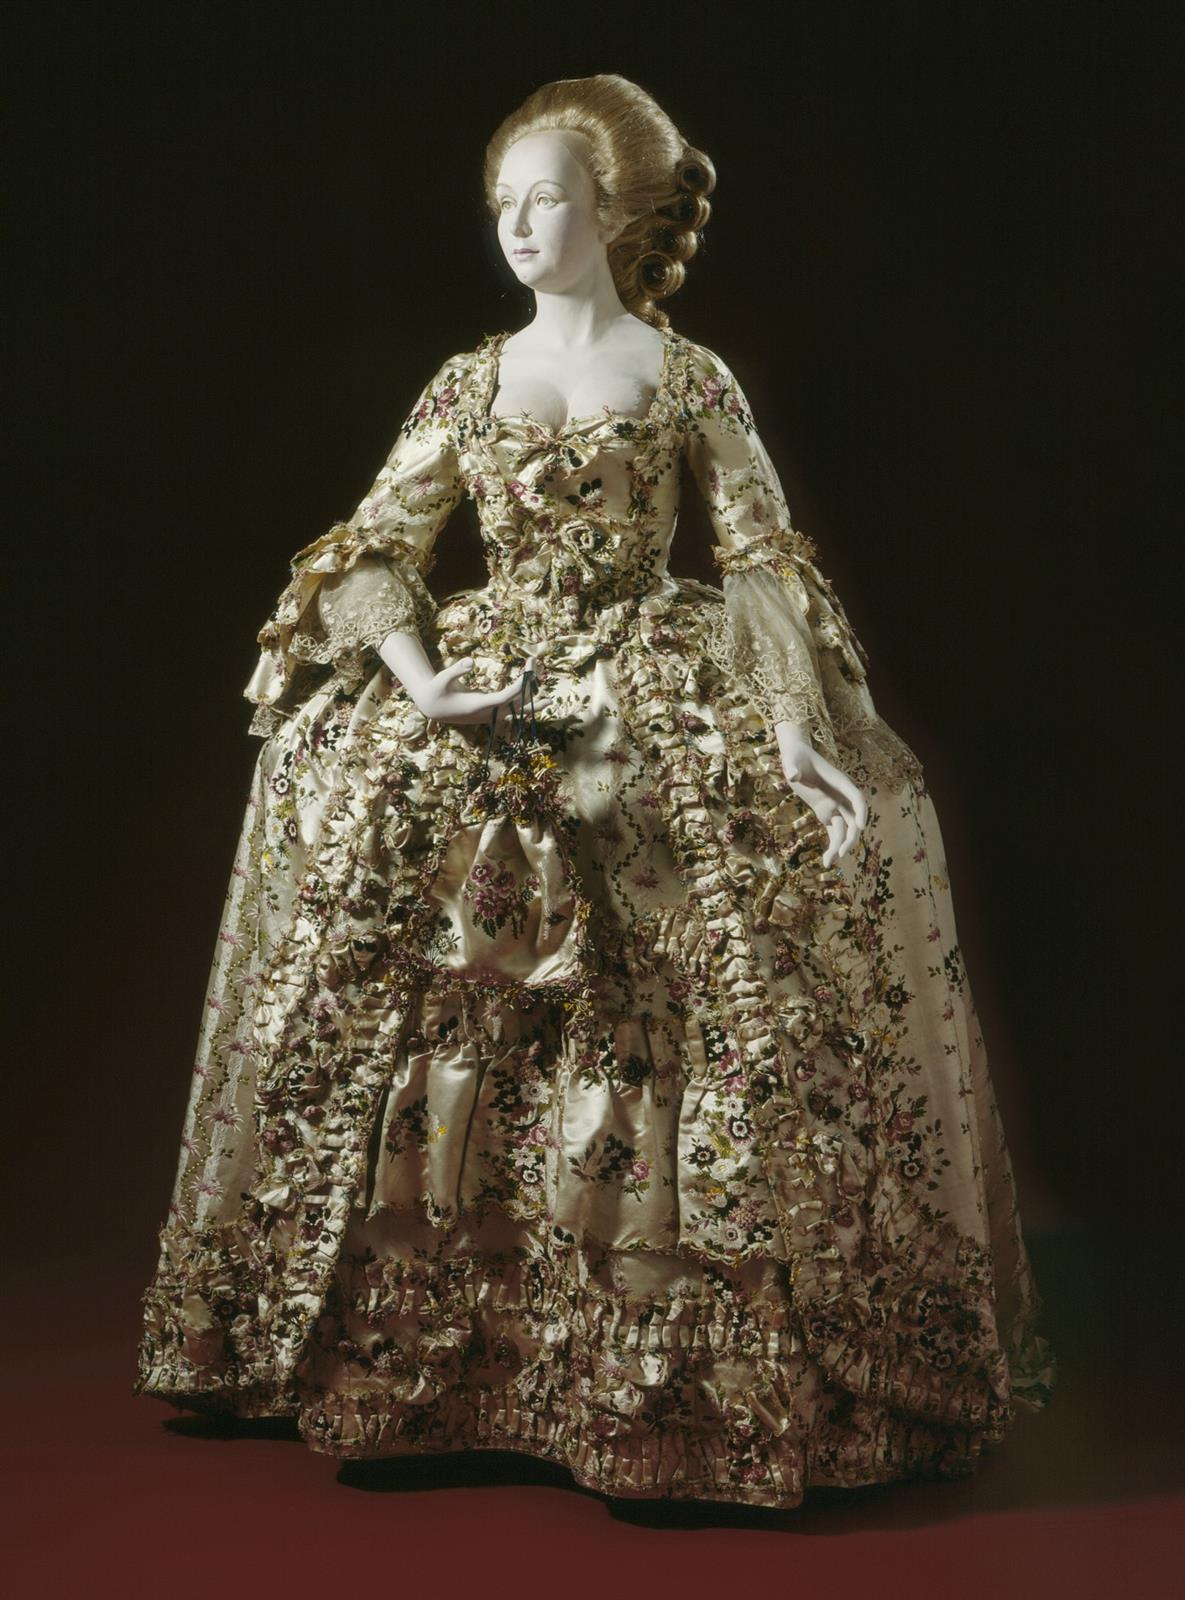 1750. British. Woman's Dress and Petticoat with Stomacher (Robe à l'anglaise). Brocaded silk satin. LACMA